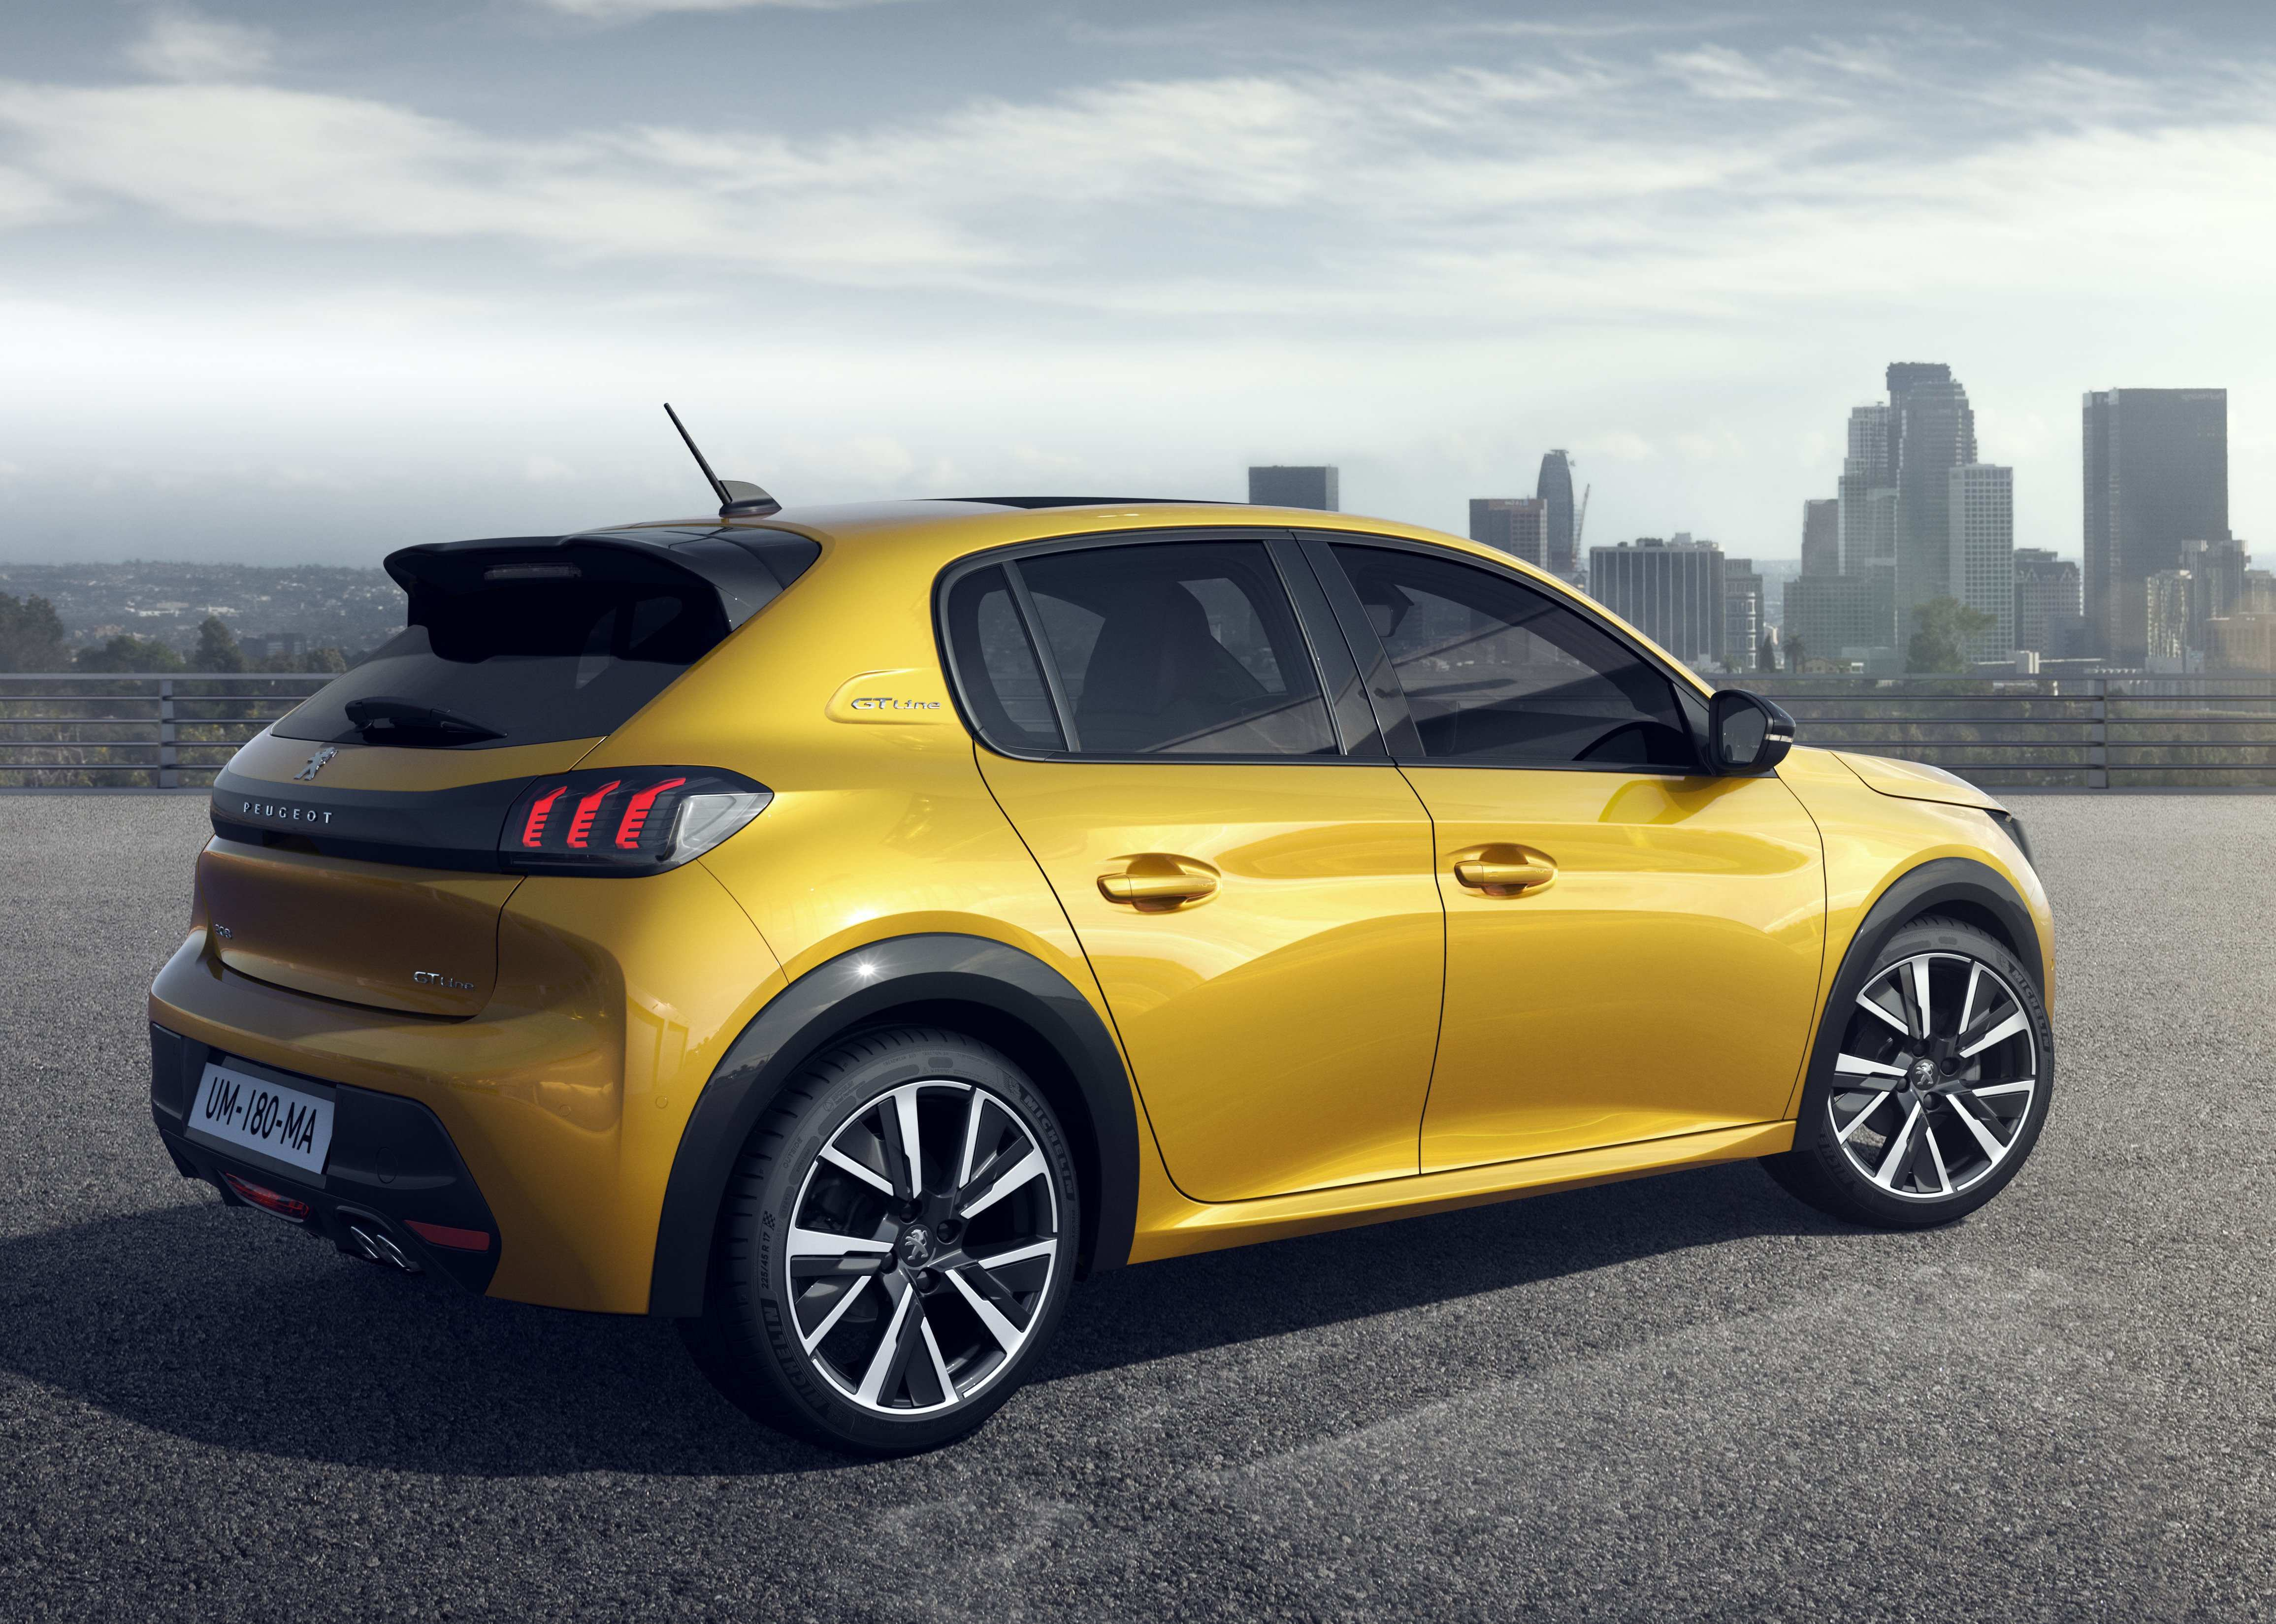 69 All New 2020 Peugeot 208 Price Design And Review